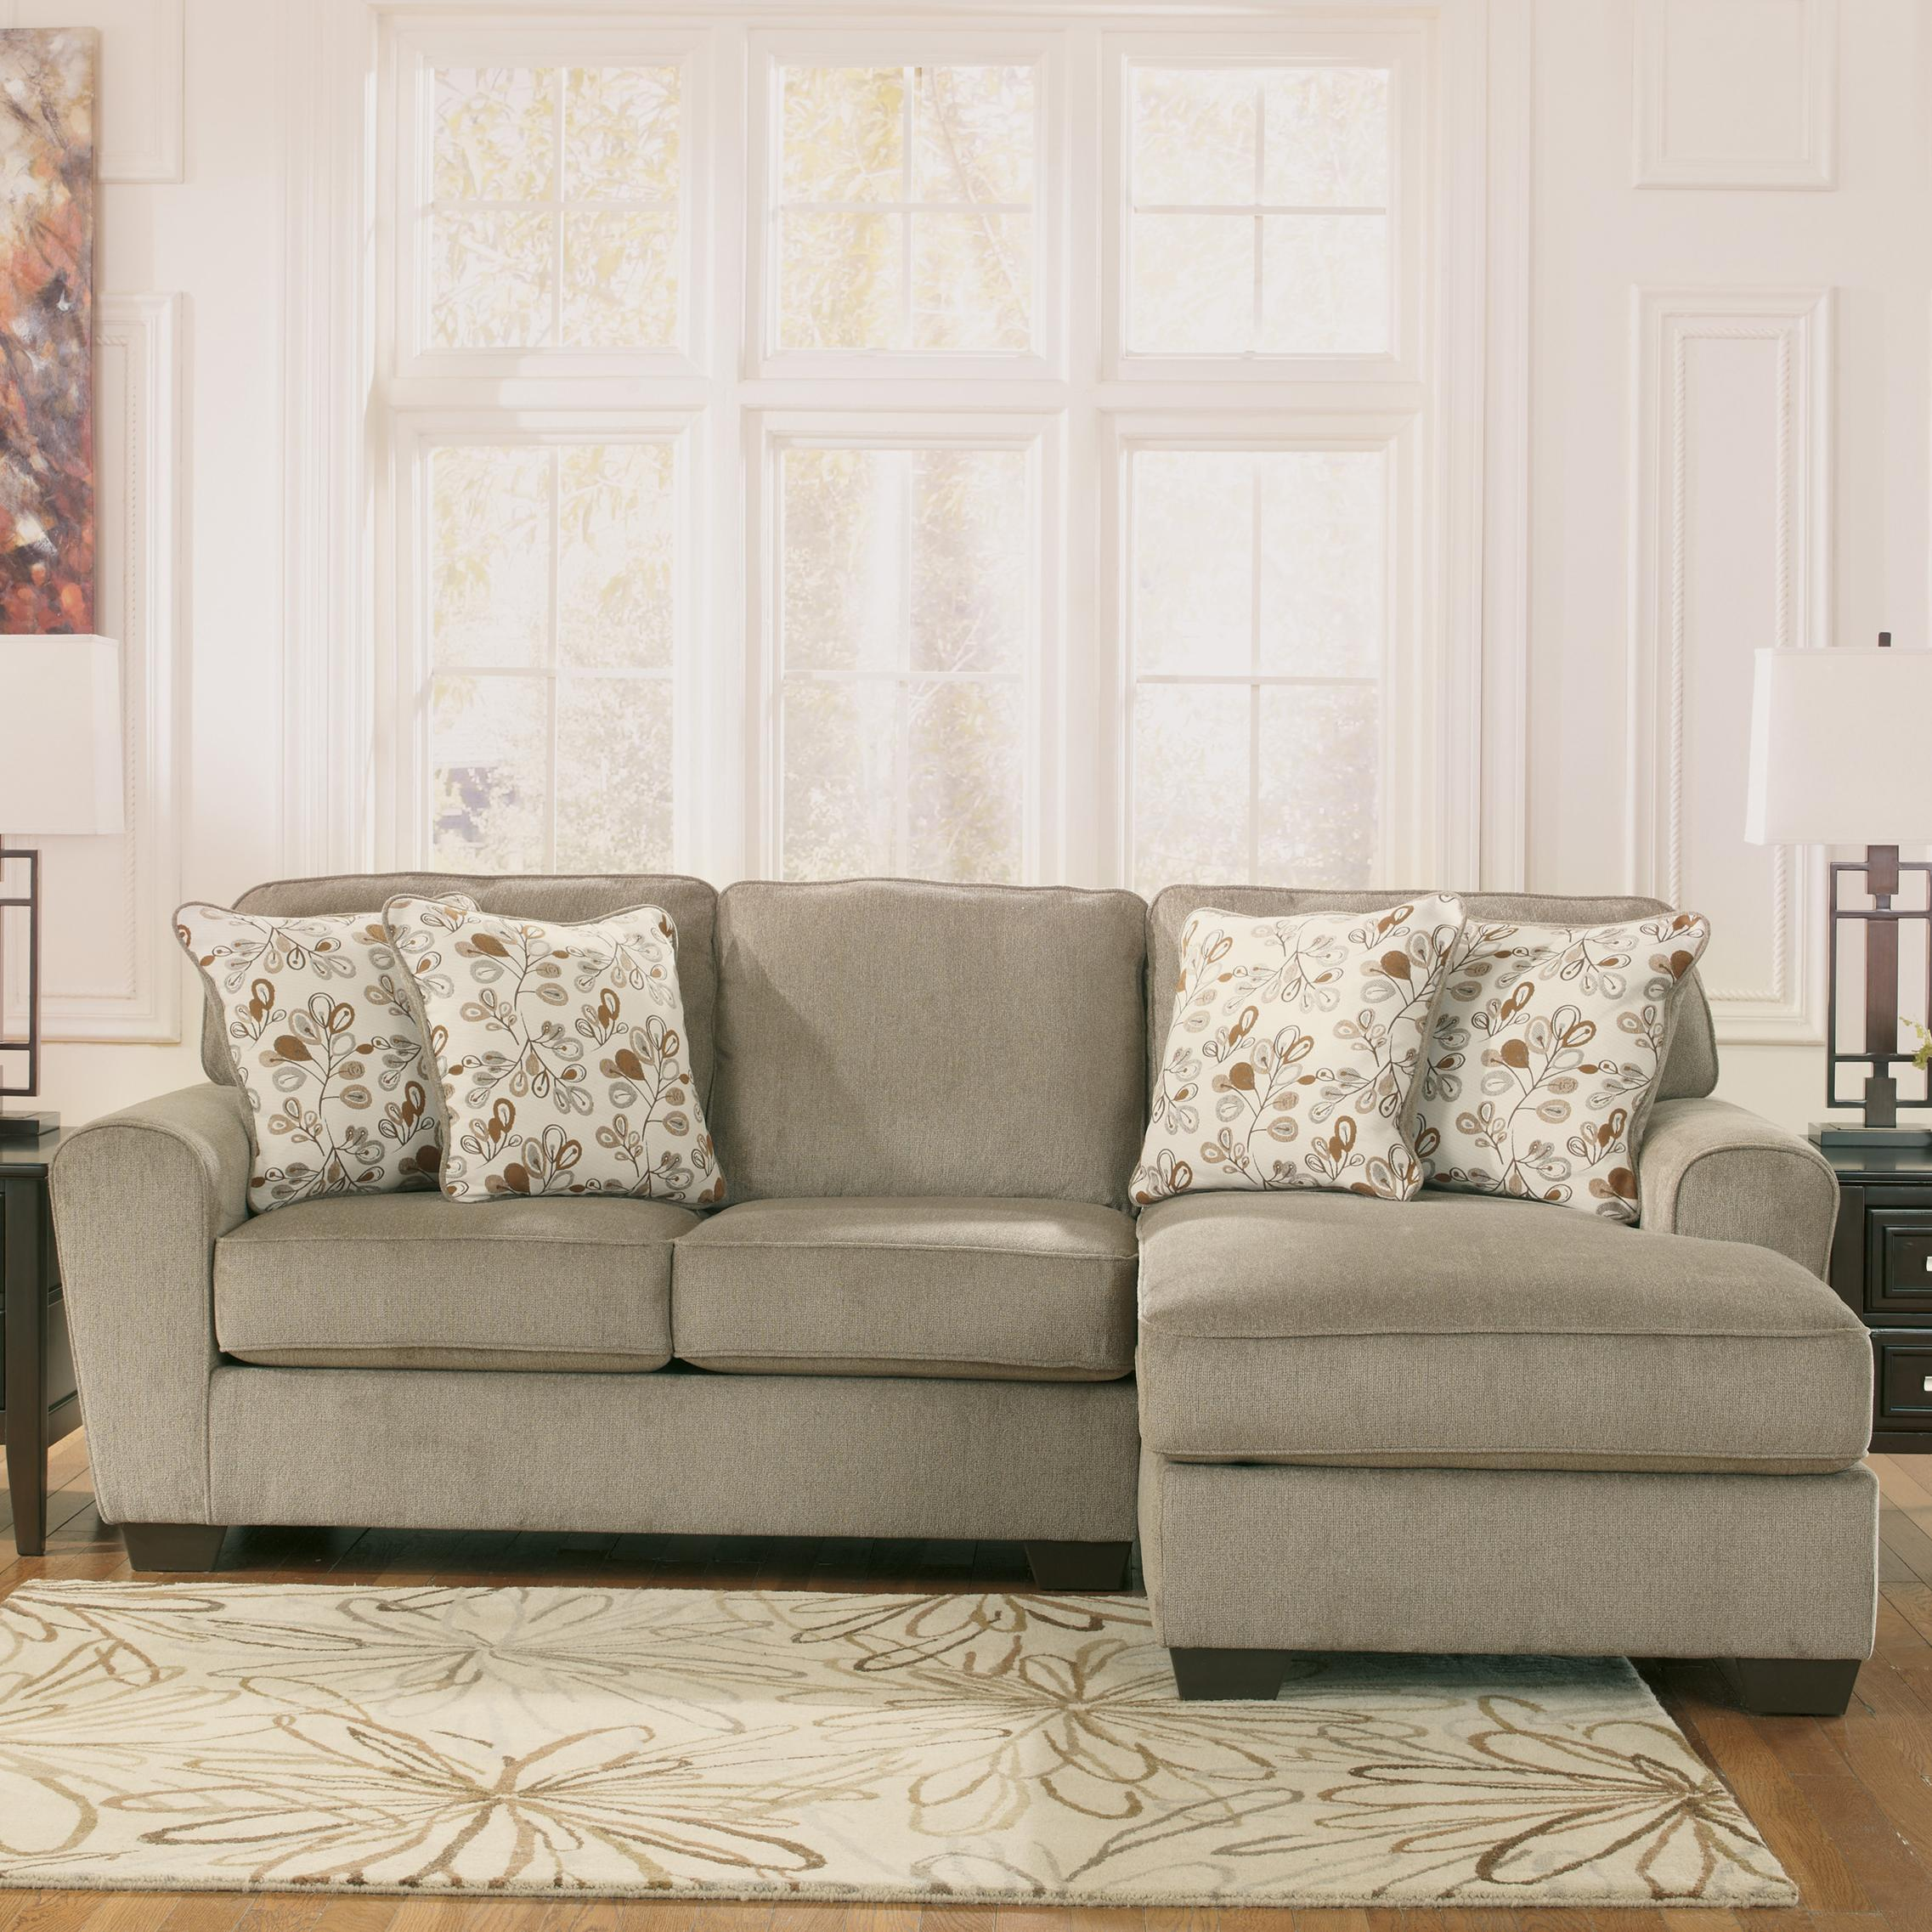 Ashley furniture patola park patina 2 piece sectional for Ashley furniture sectional sofa sale